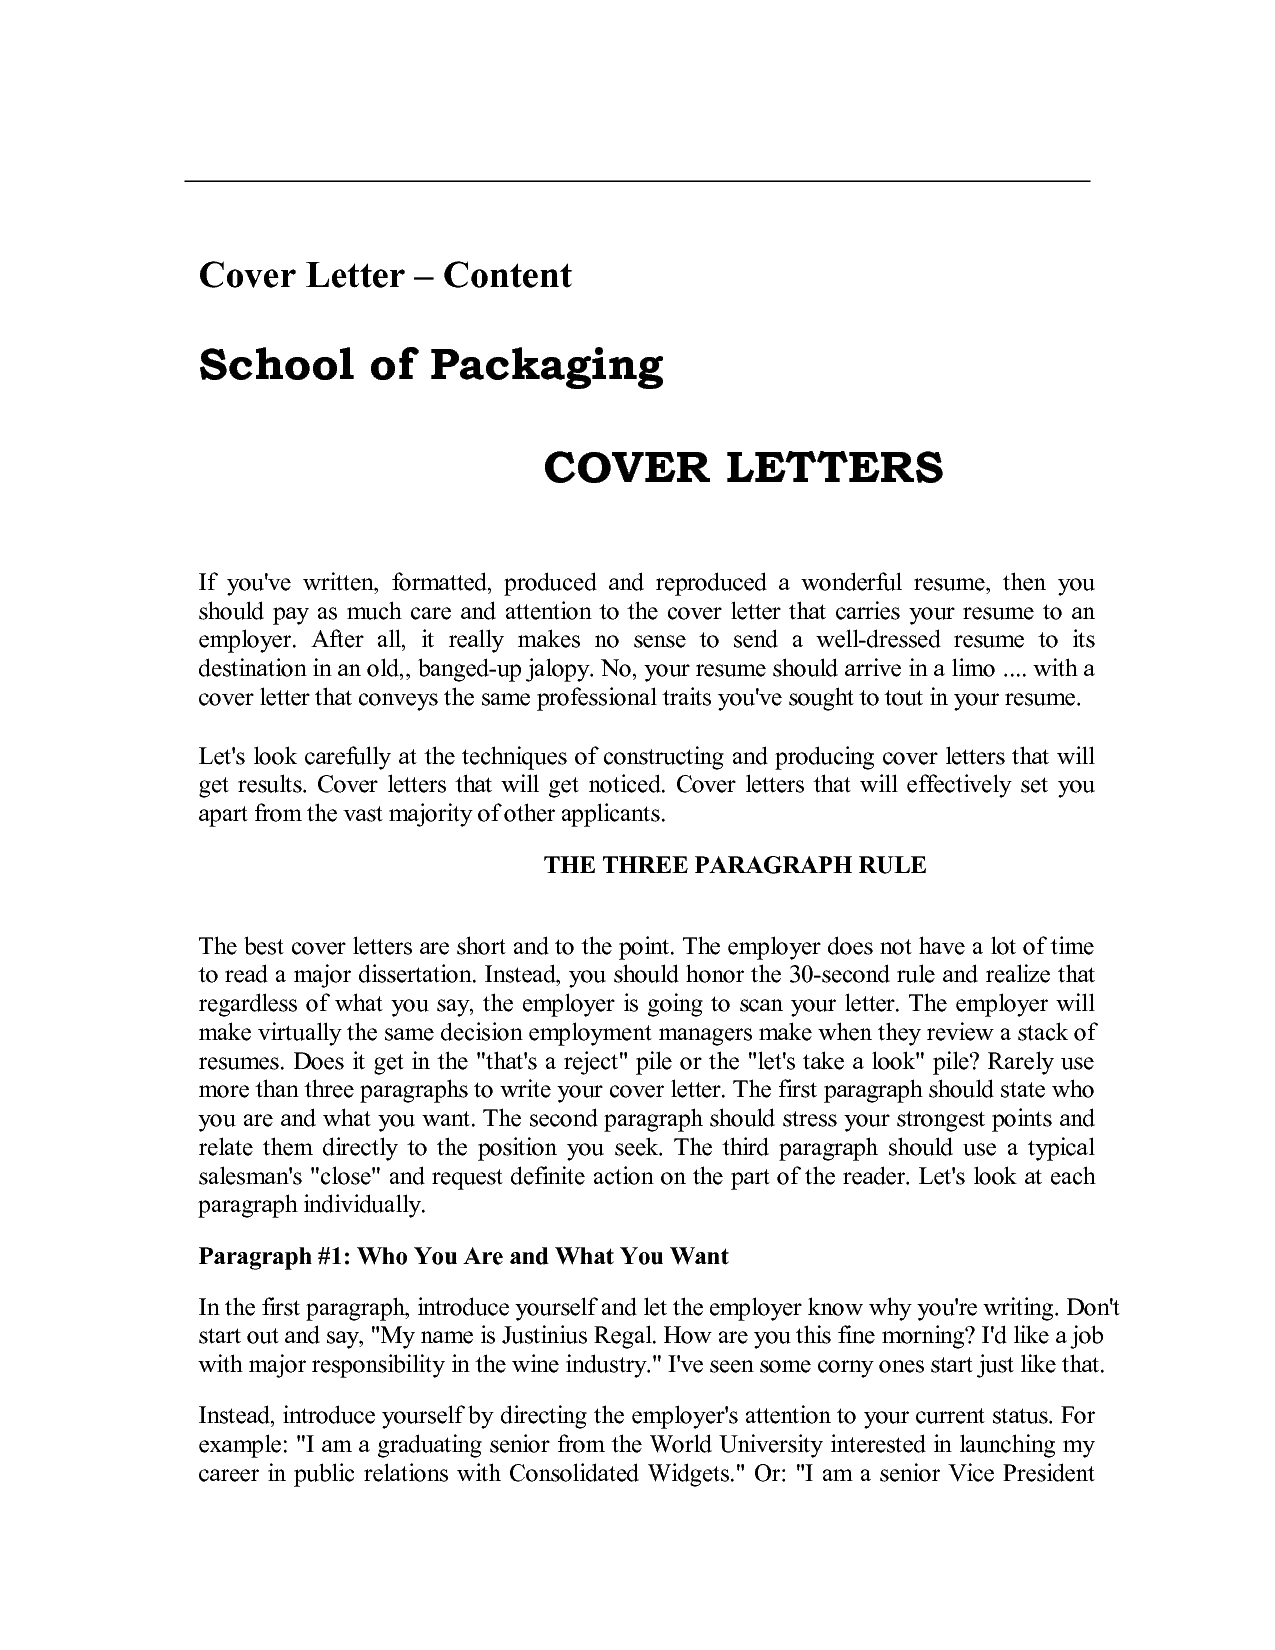 Cover letters pdf with resumecover letter for resume cover letter cover letters pdf with resumecover letter for resume cover letter examples madrichimfo Image collections